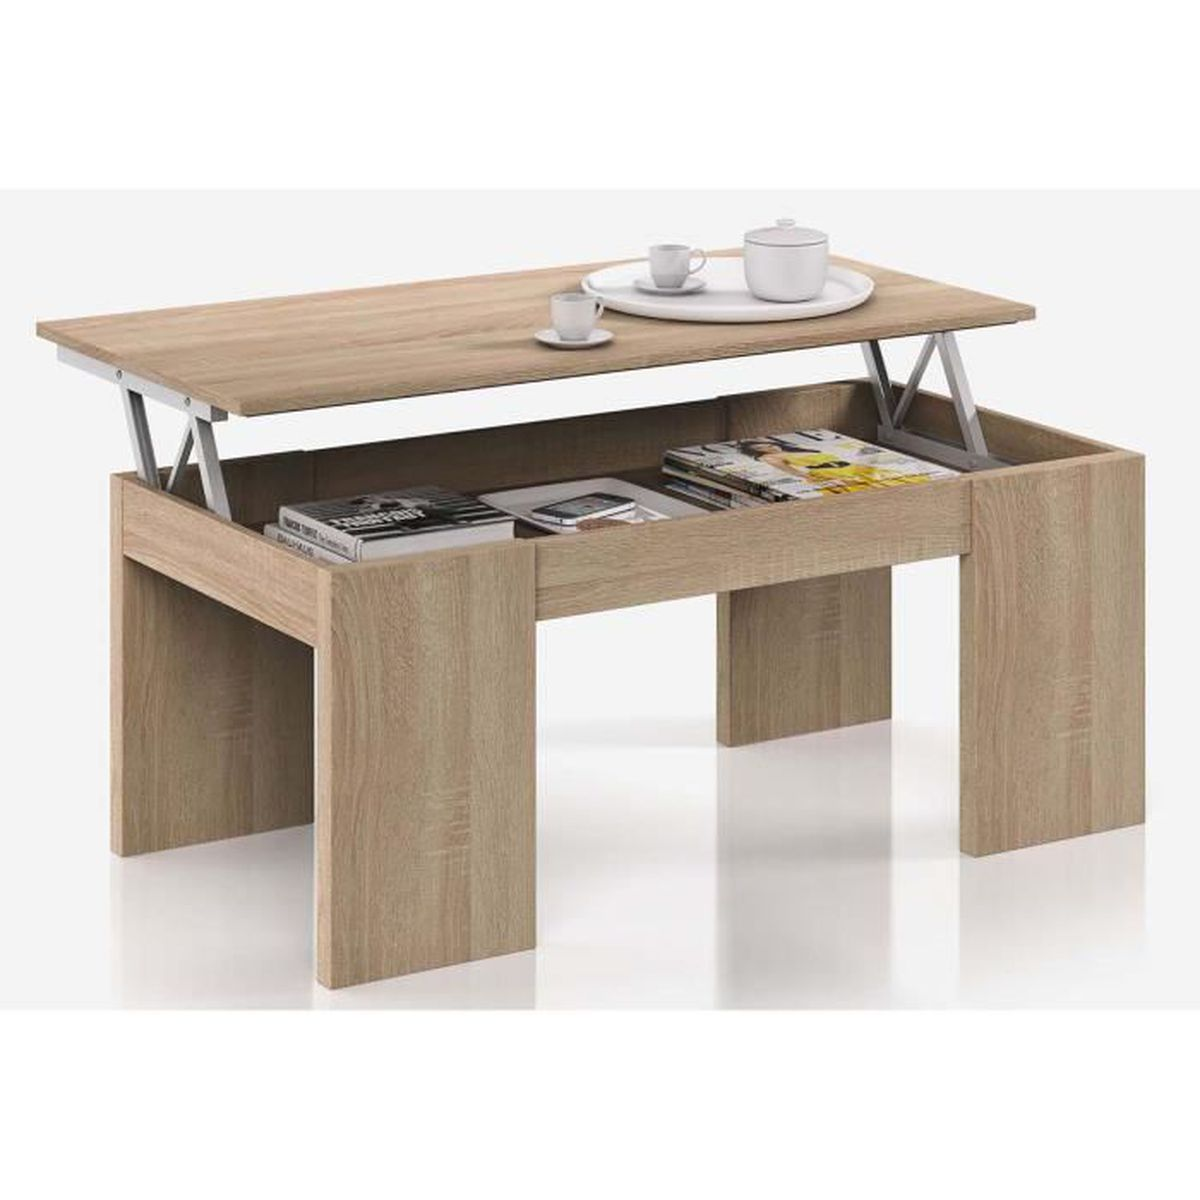 Table basse plateau relevable coloris ch ne canadien for Table basse scandinave plateau relevable